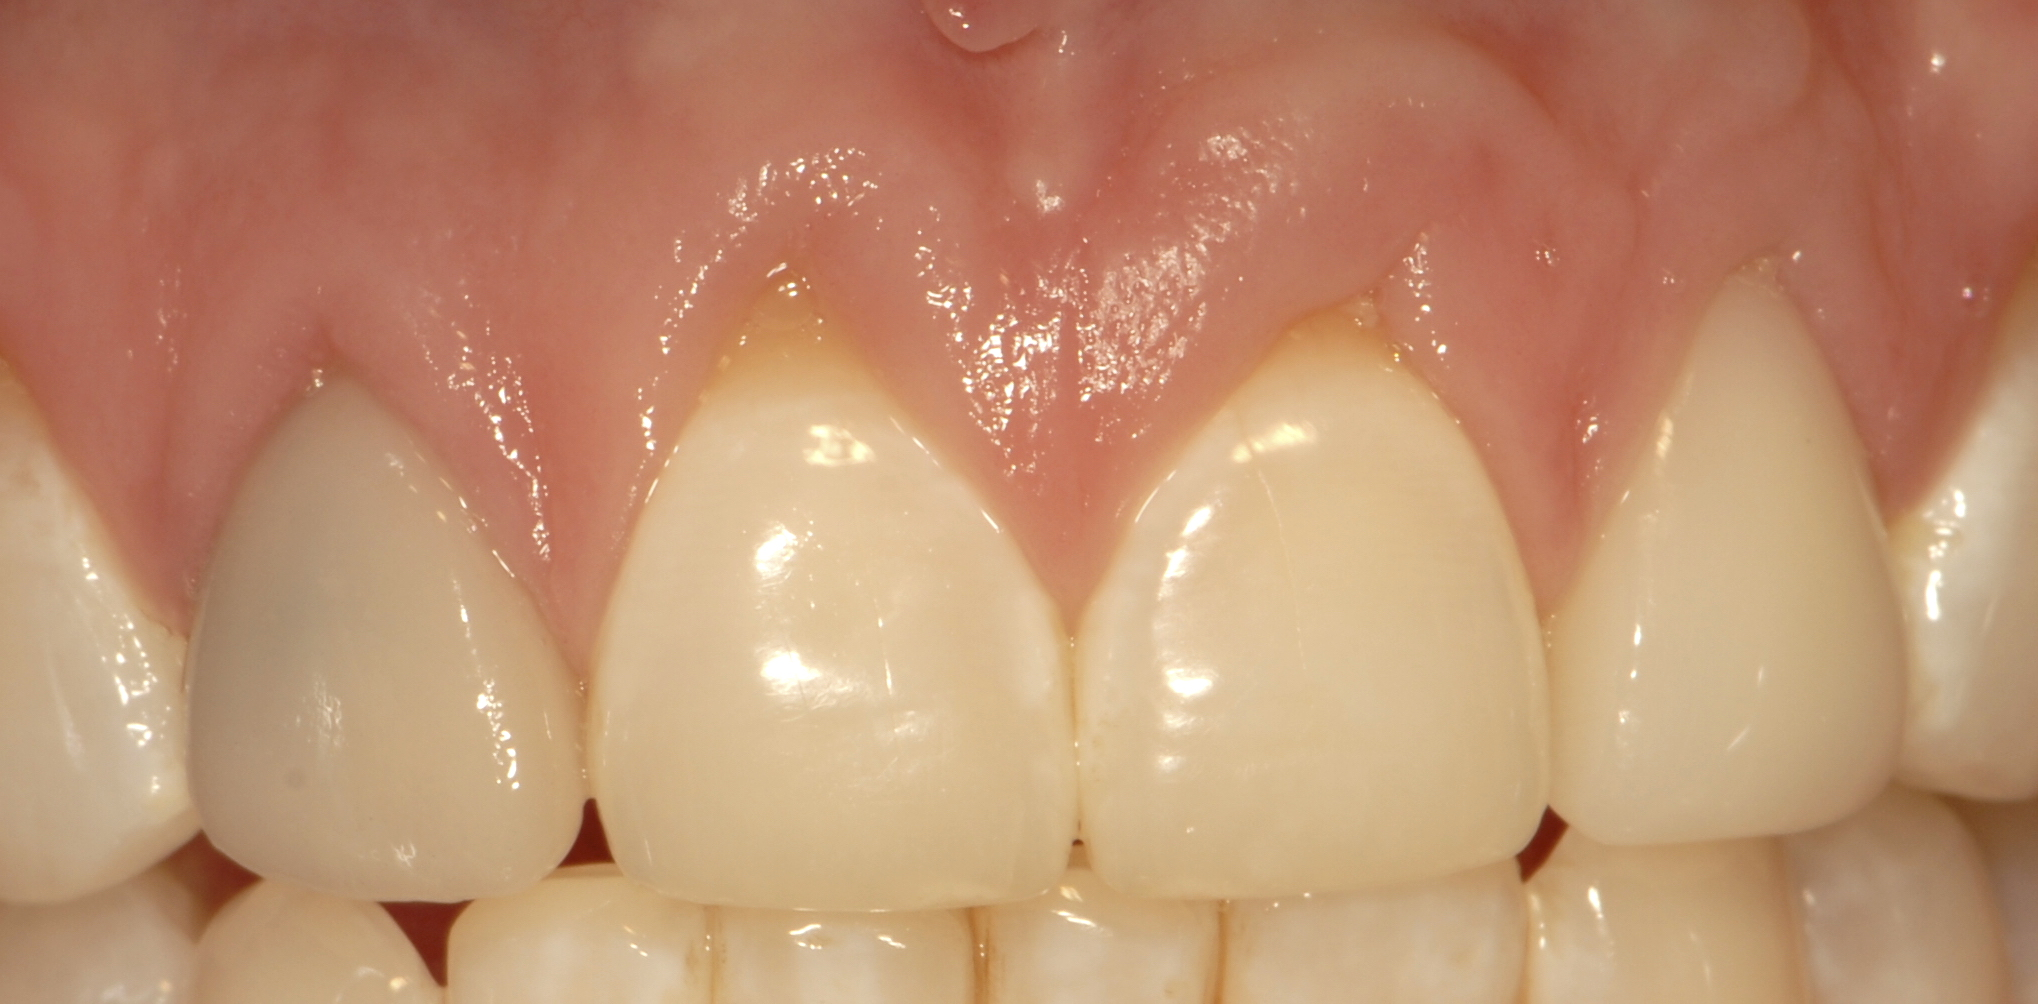 Ill fitting veneers gum issues before